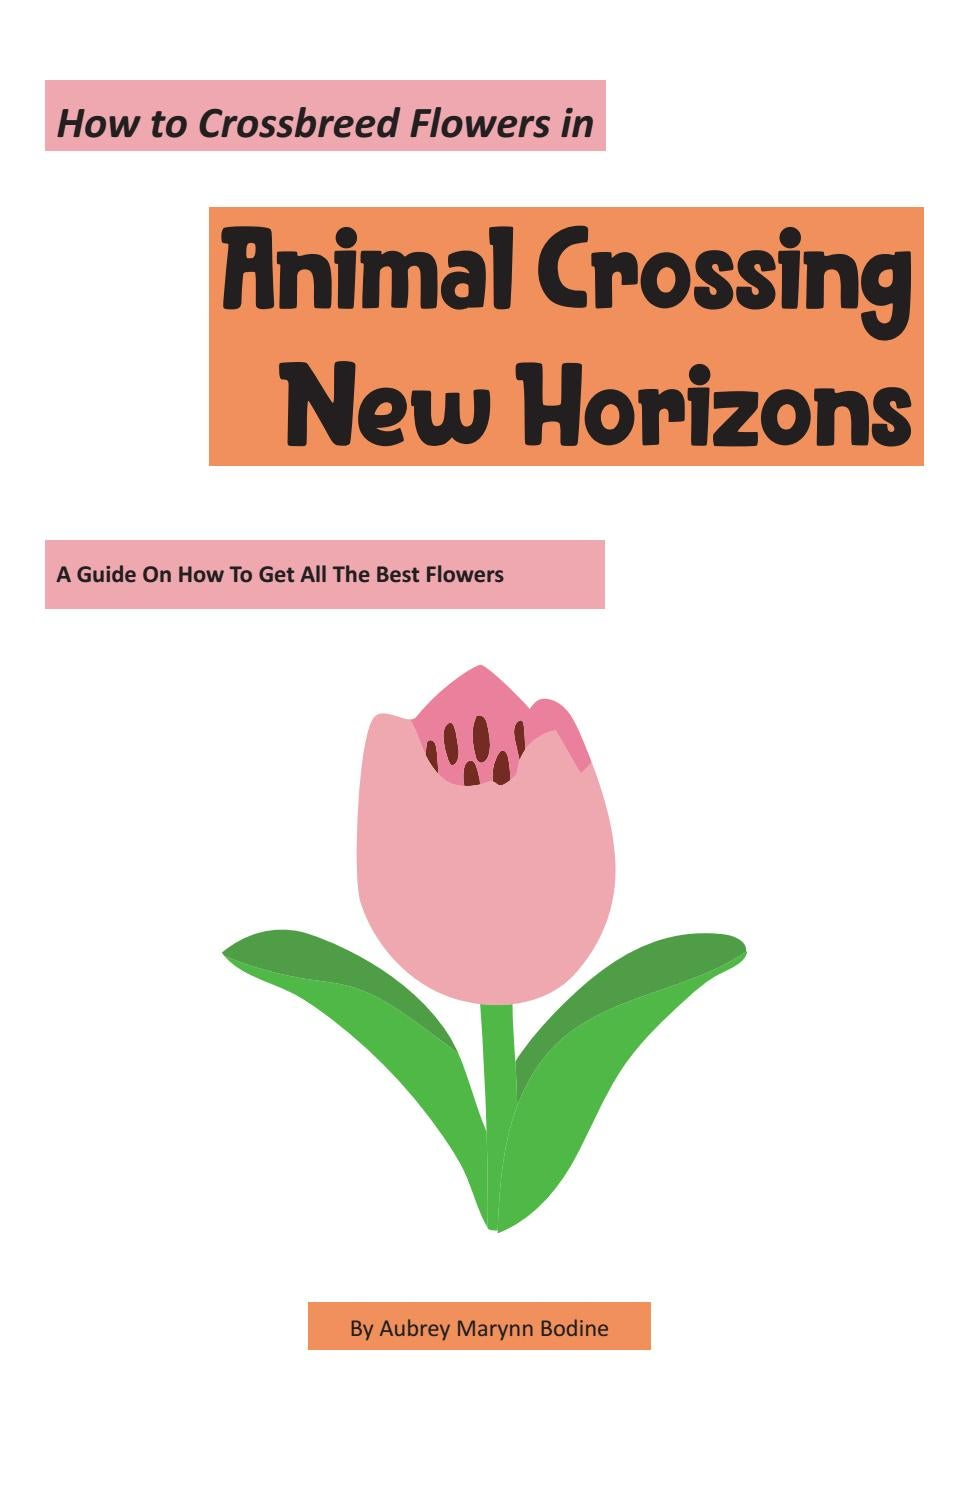 How To Crossbreed Flowers In Animal Crossing New Horizons By